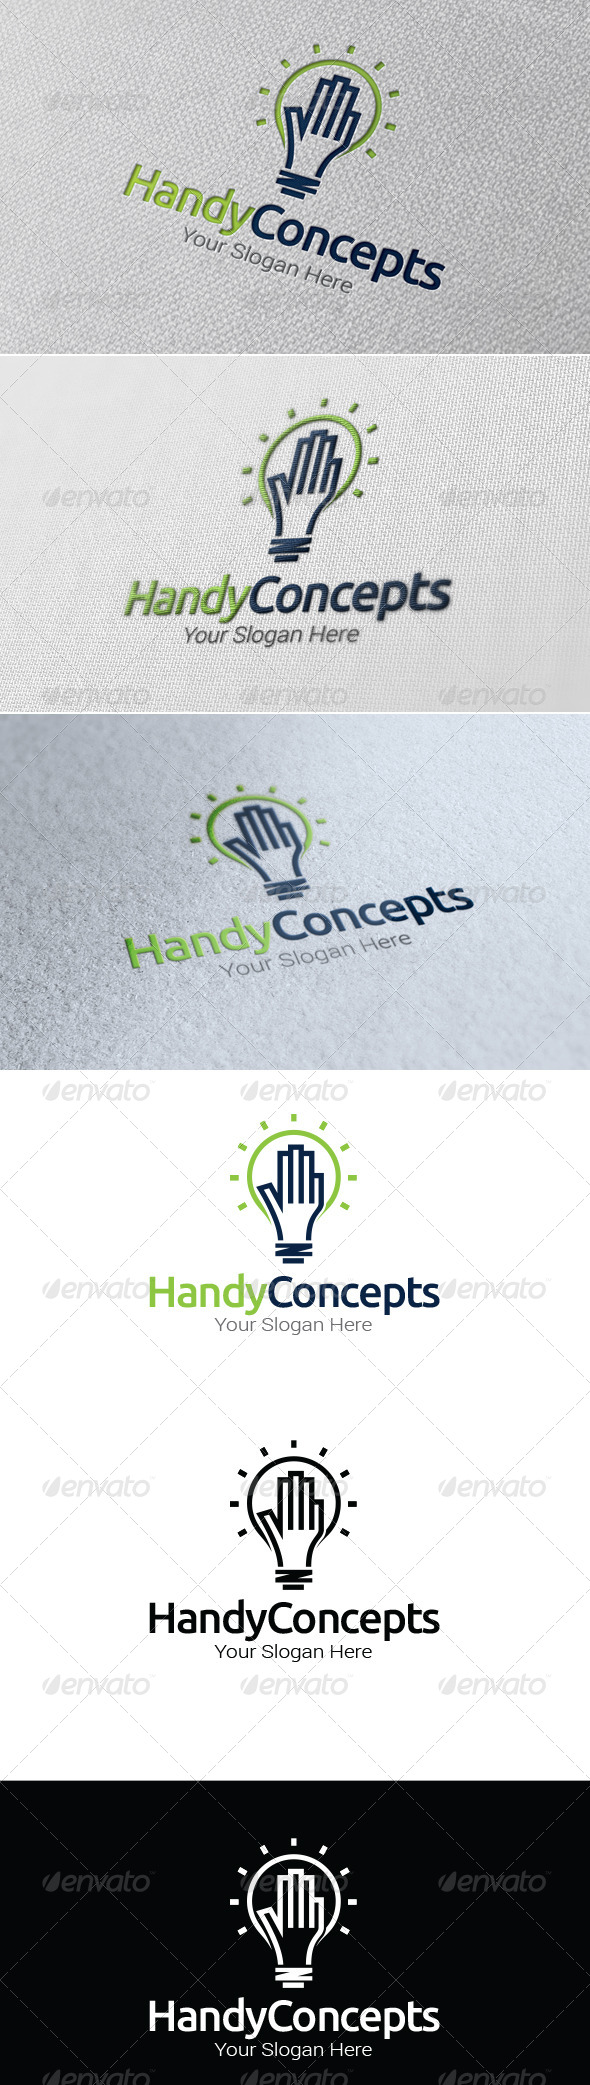 GraphicRiver Handy Concepts Logo Template 7559573